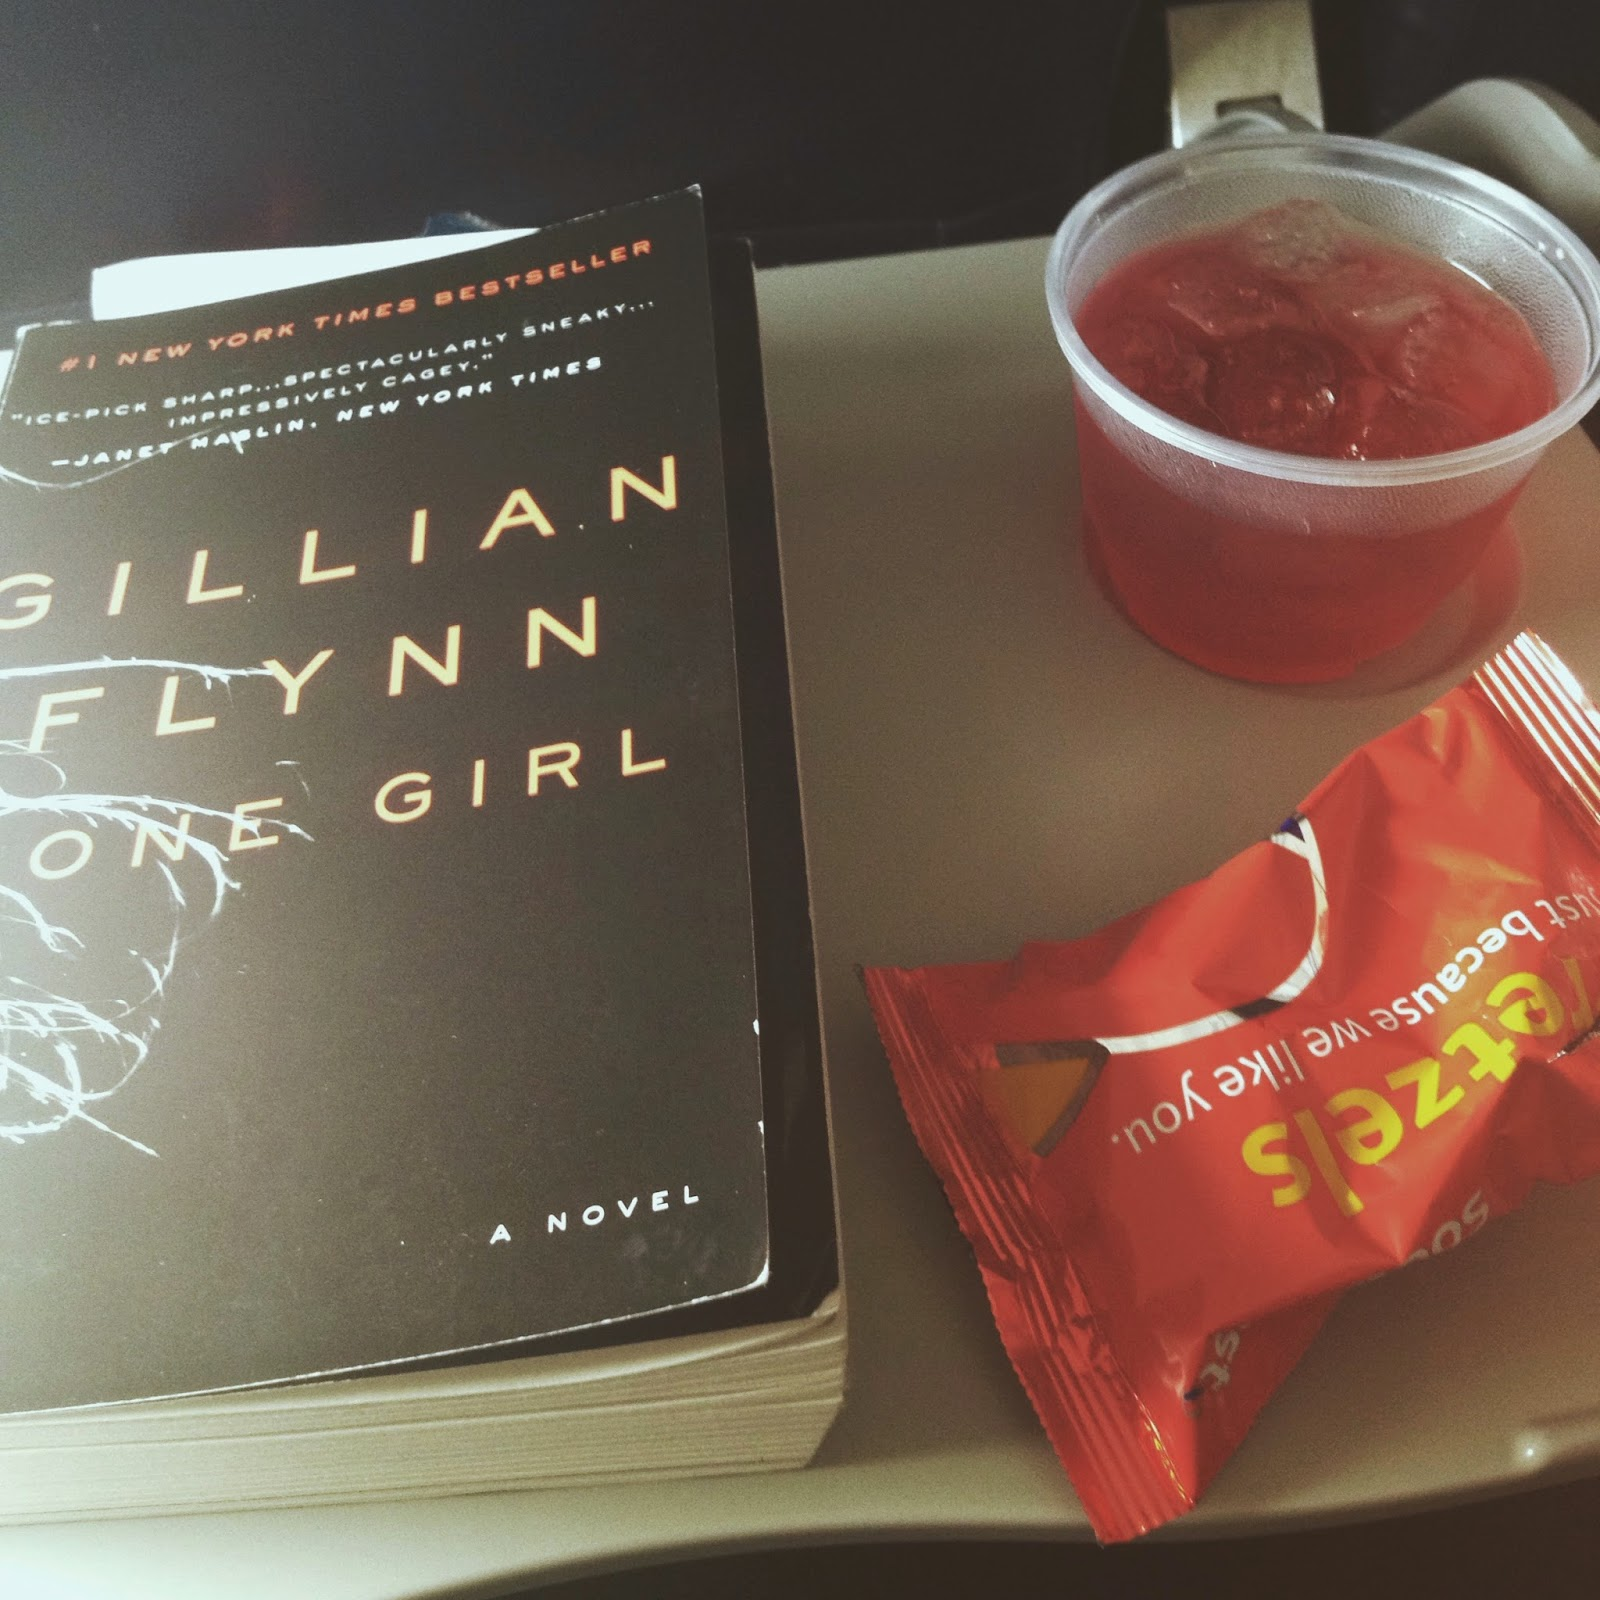 Airplane supplies, Gone Girl, pretzels and drink